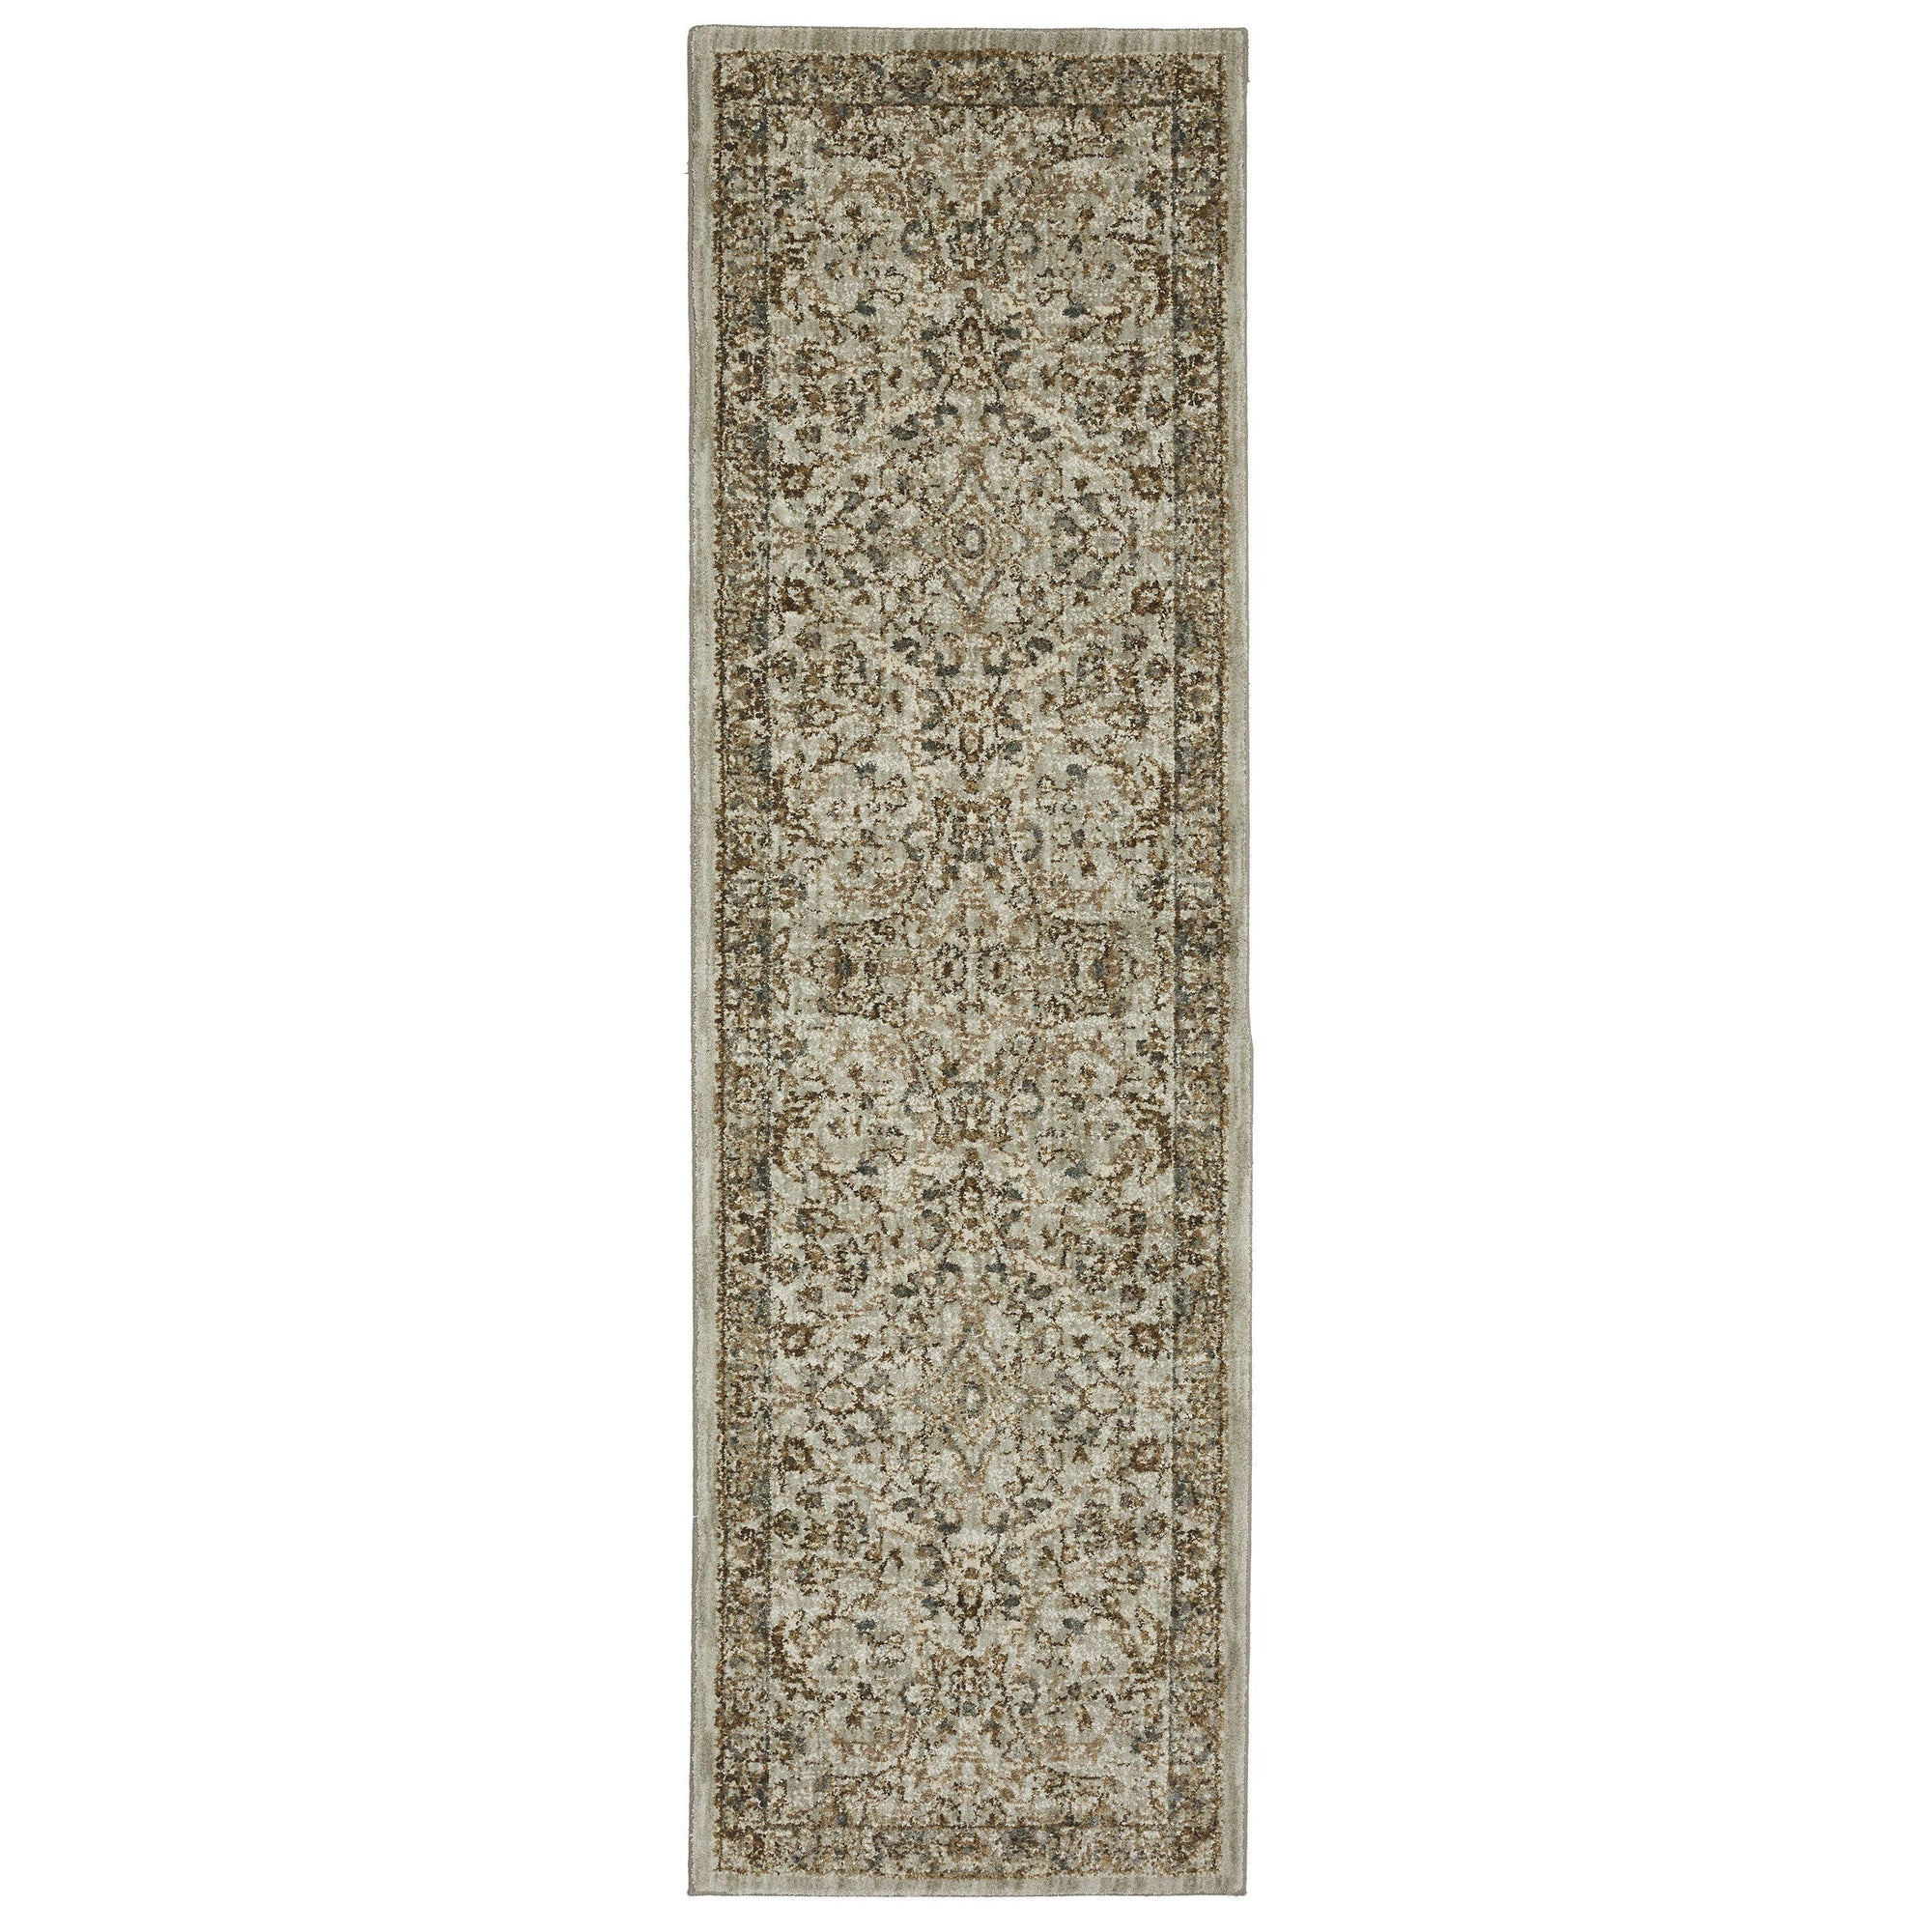 "Karastan Touchstone Portree Willow Grey-Area Rug-Karastan-3' 6""x5' 6""-The Rug Truck"